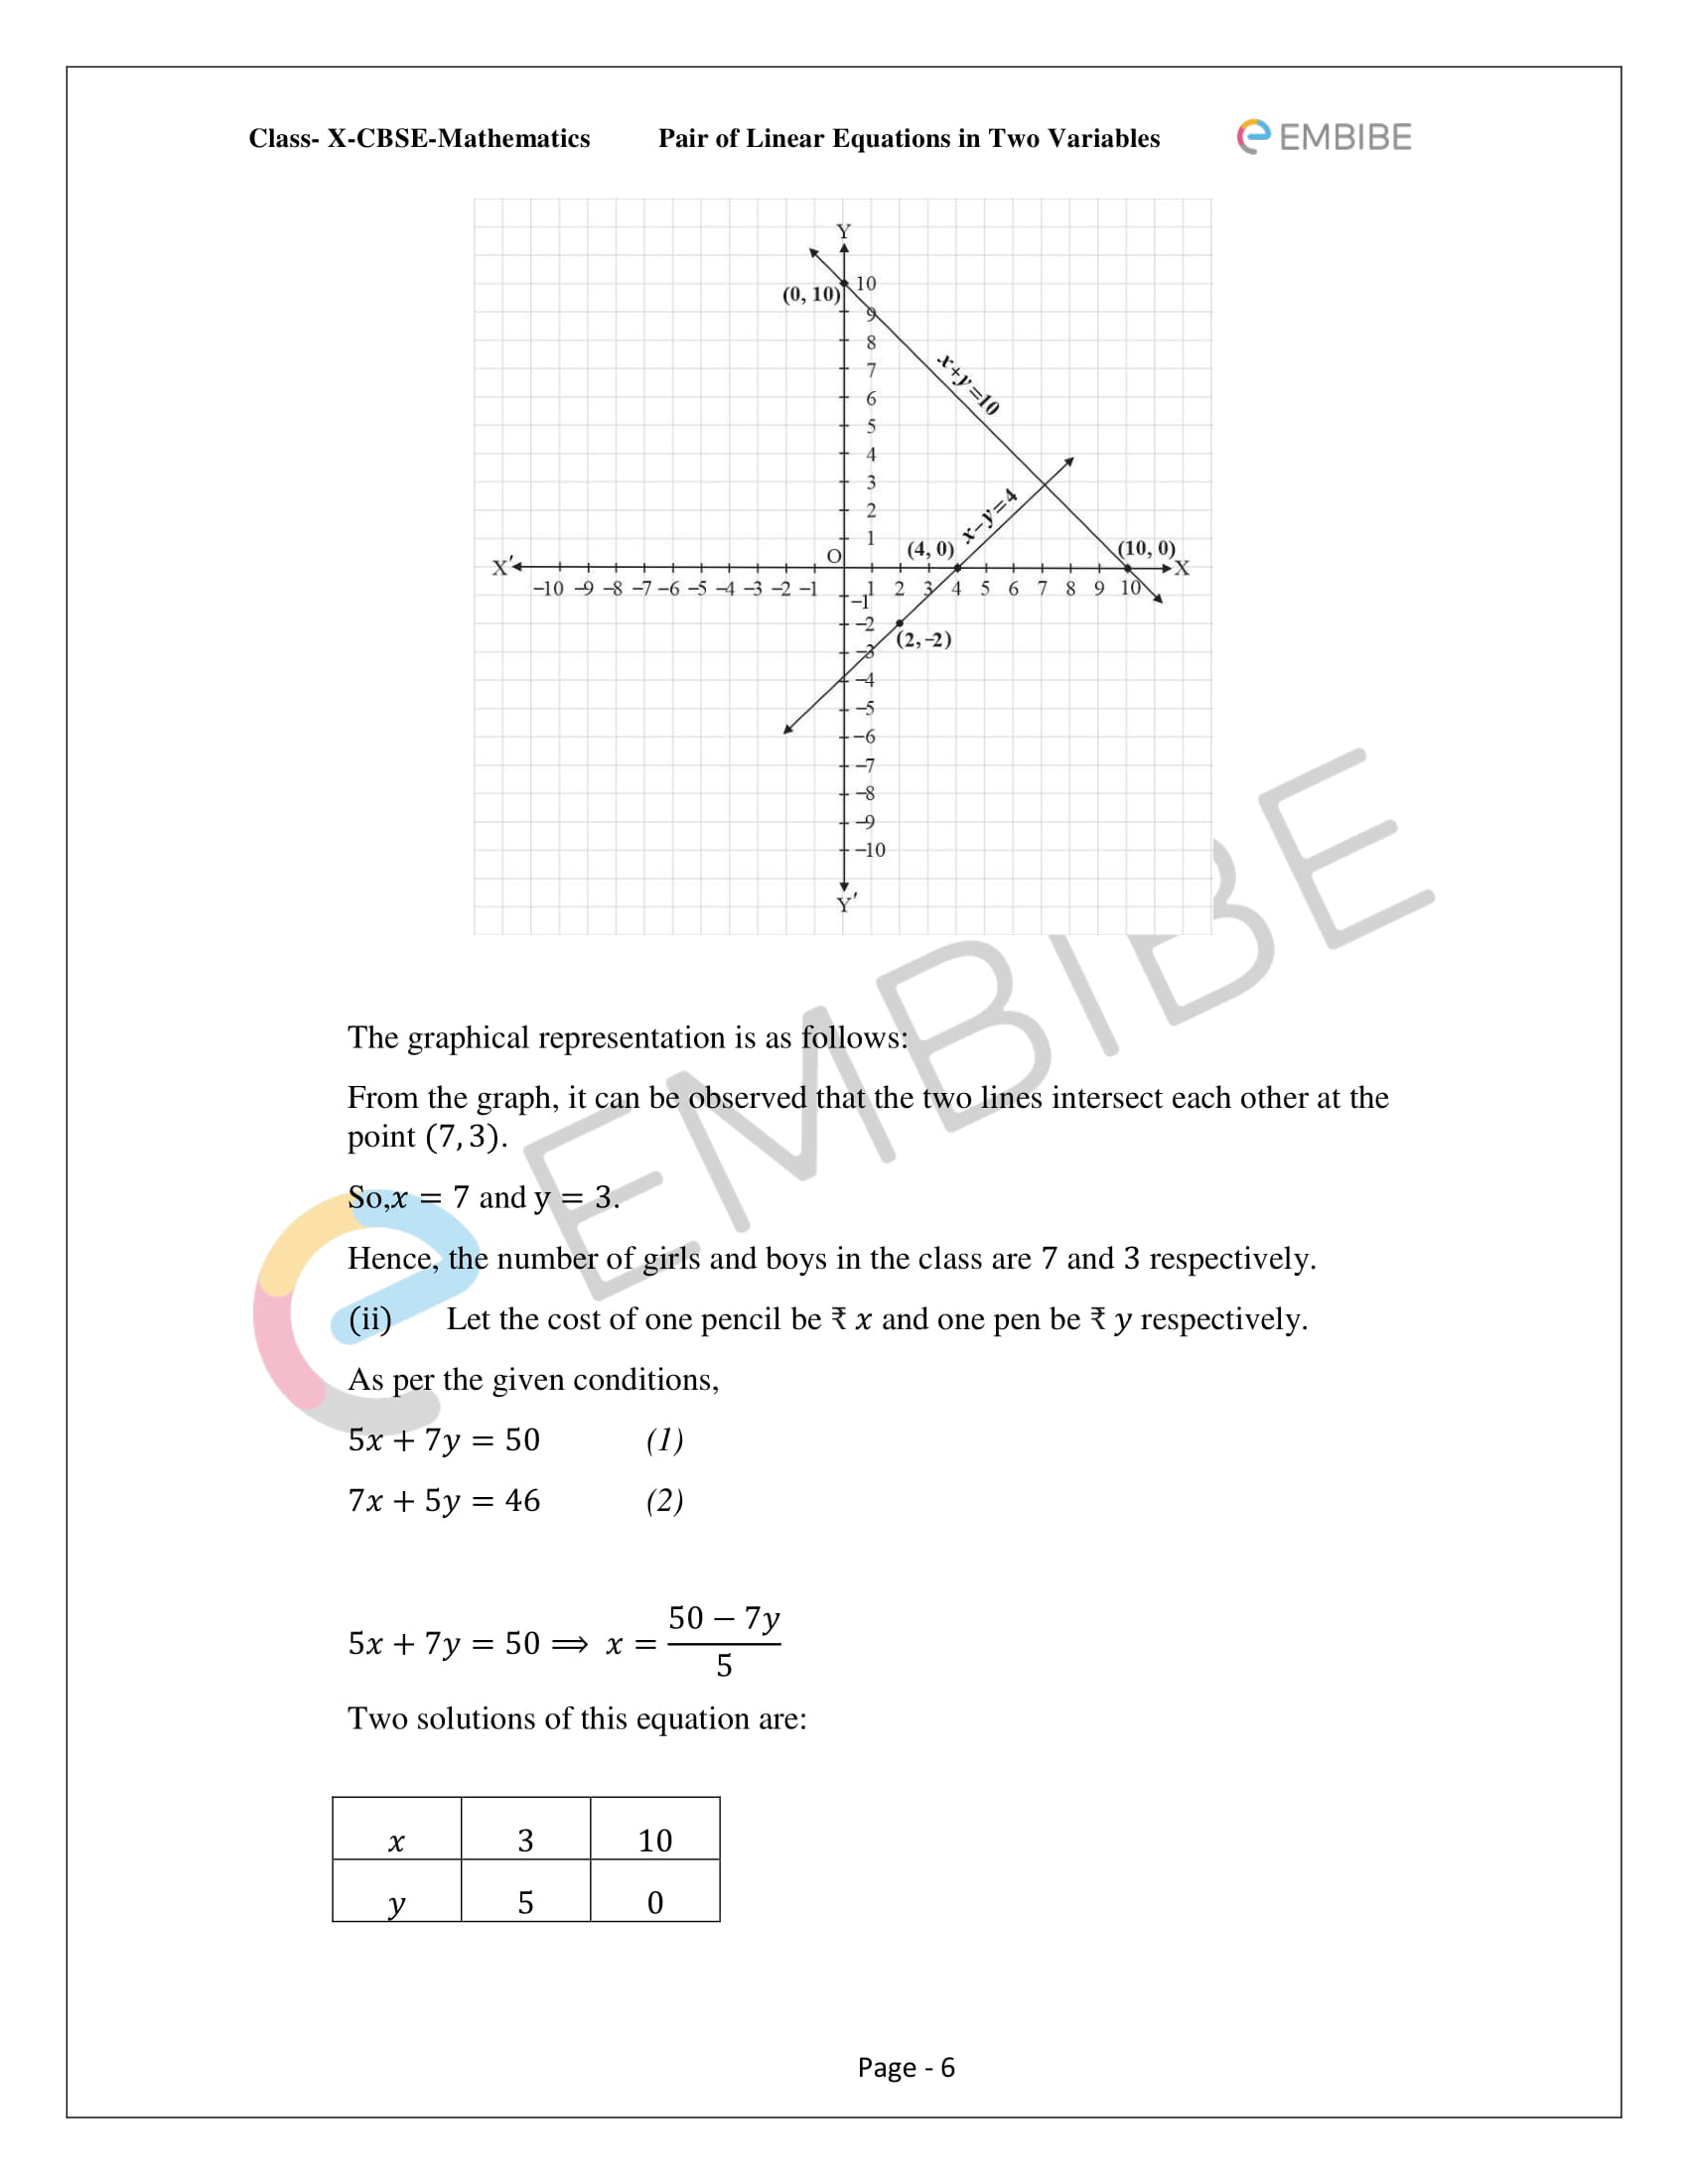 NCERT Solutions for Class 10 Maths Chapter 3: Pair of Linear